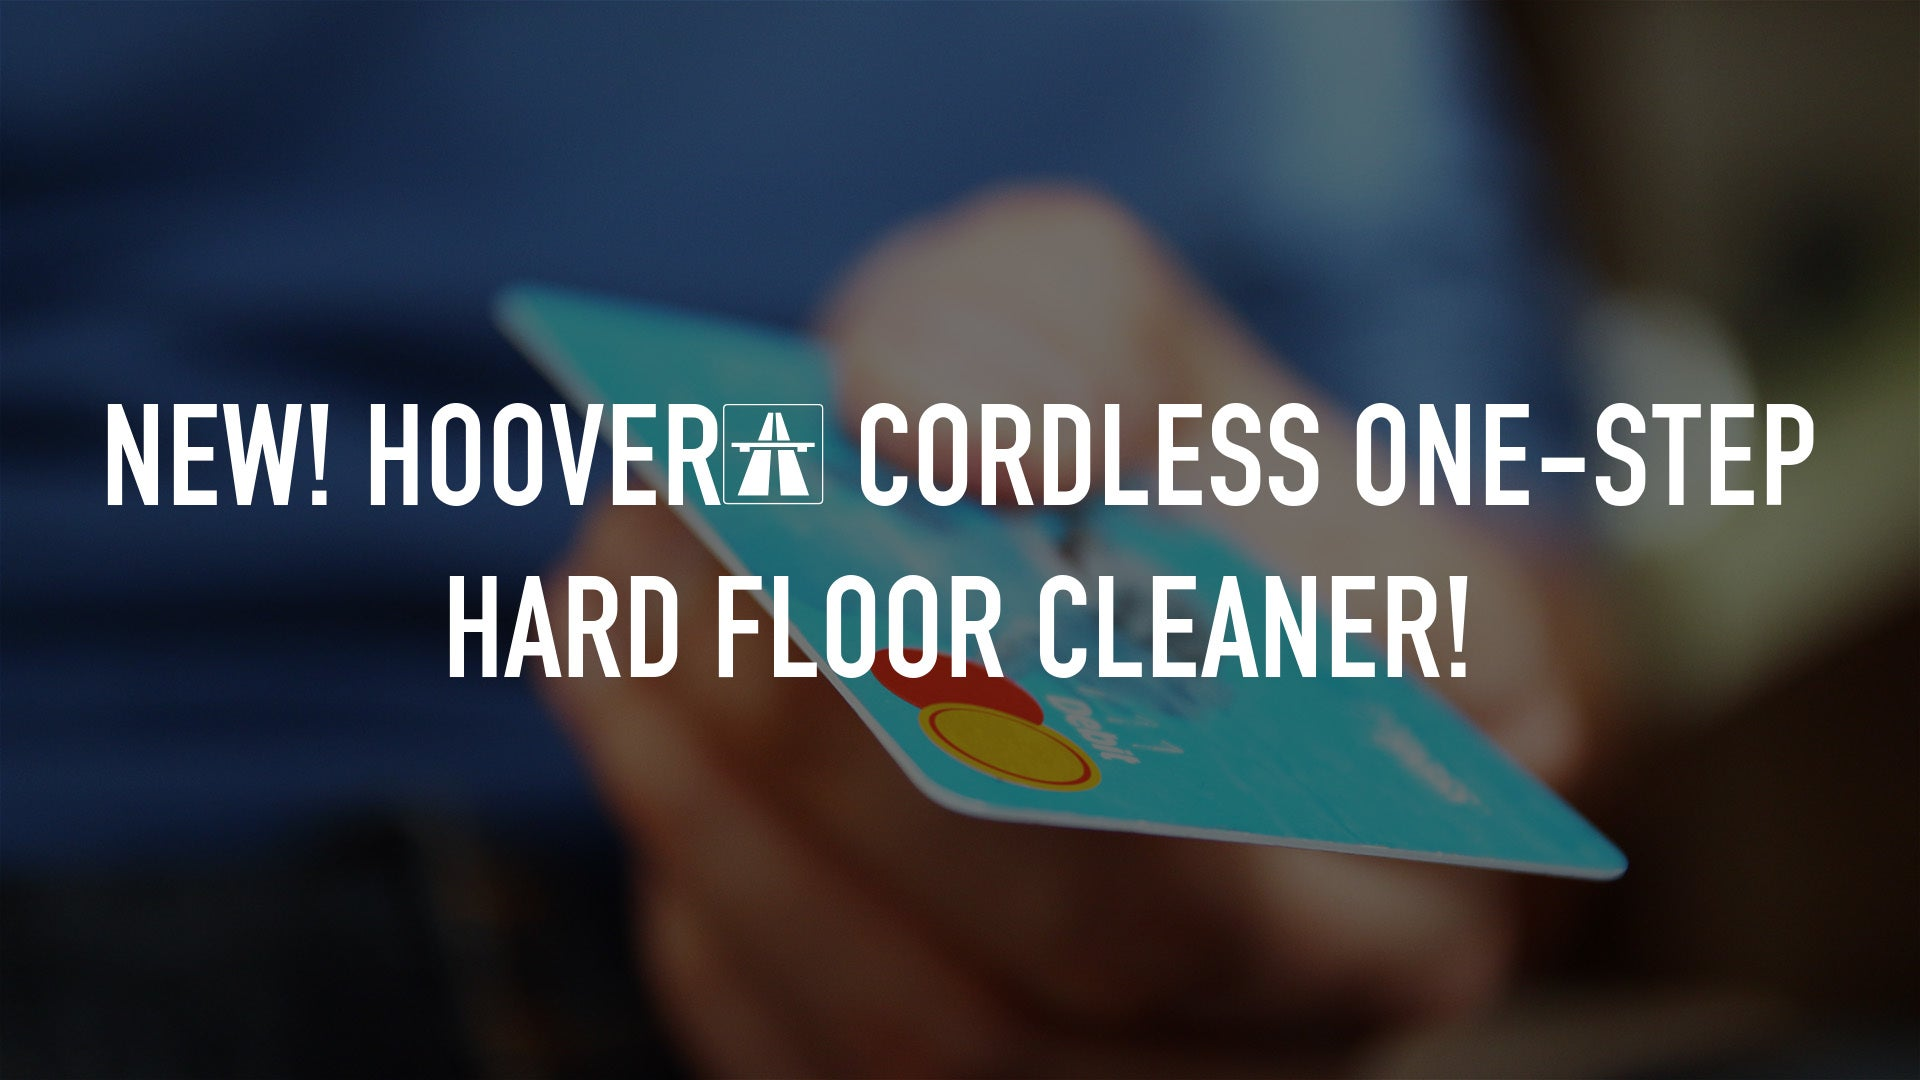 NEW! HOOVER® CORDLESS one-step hard floor cleaner!